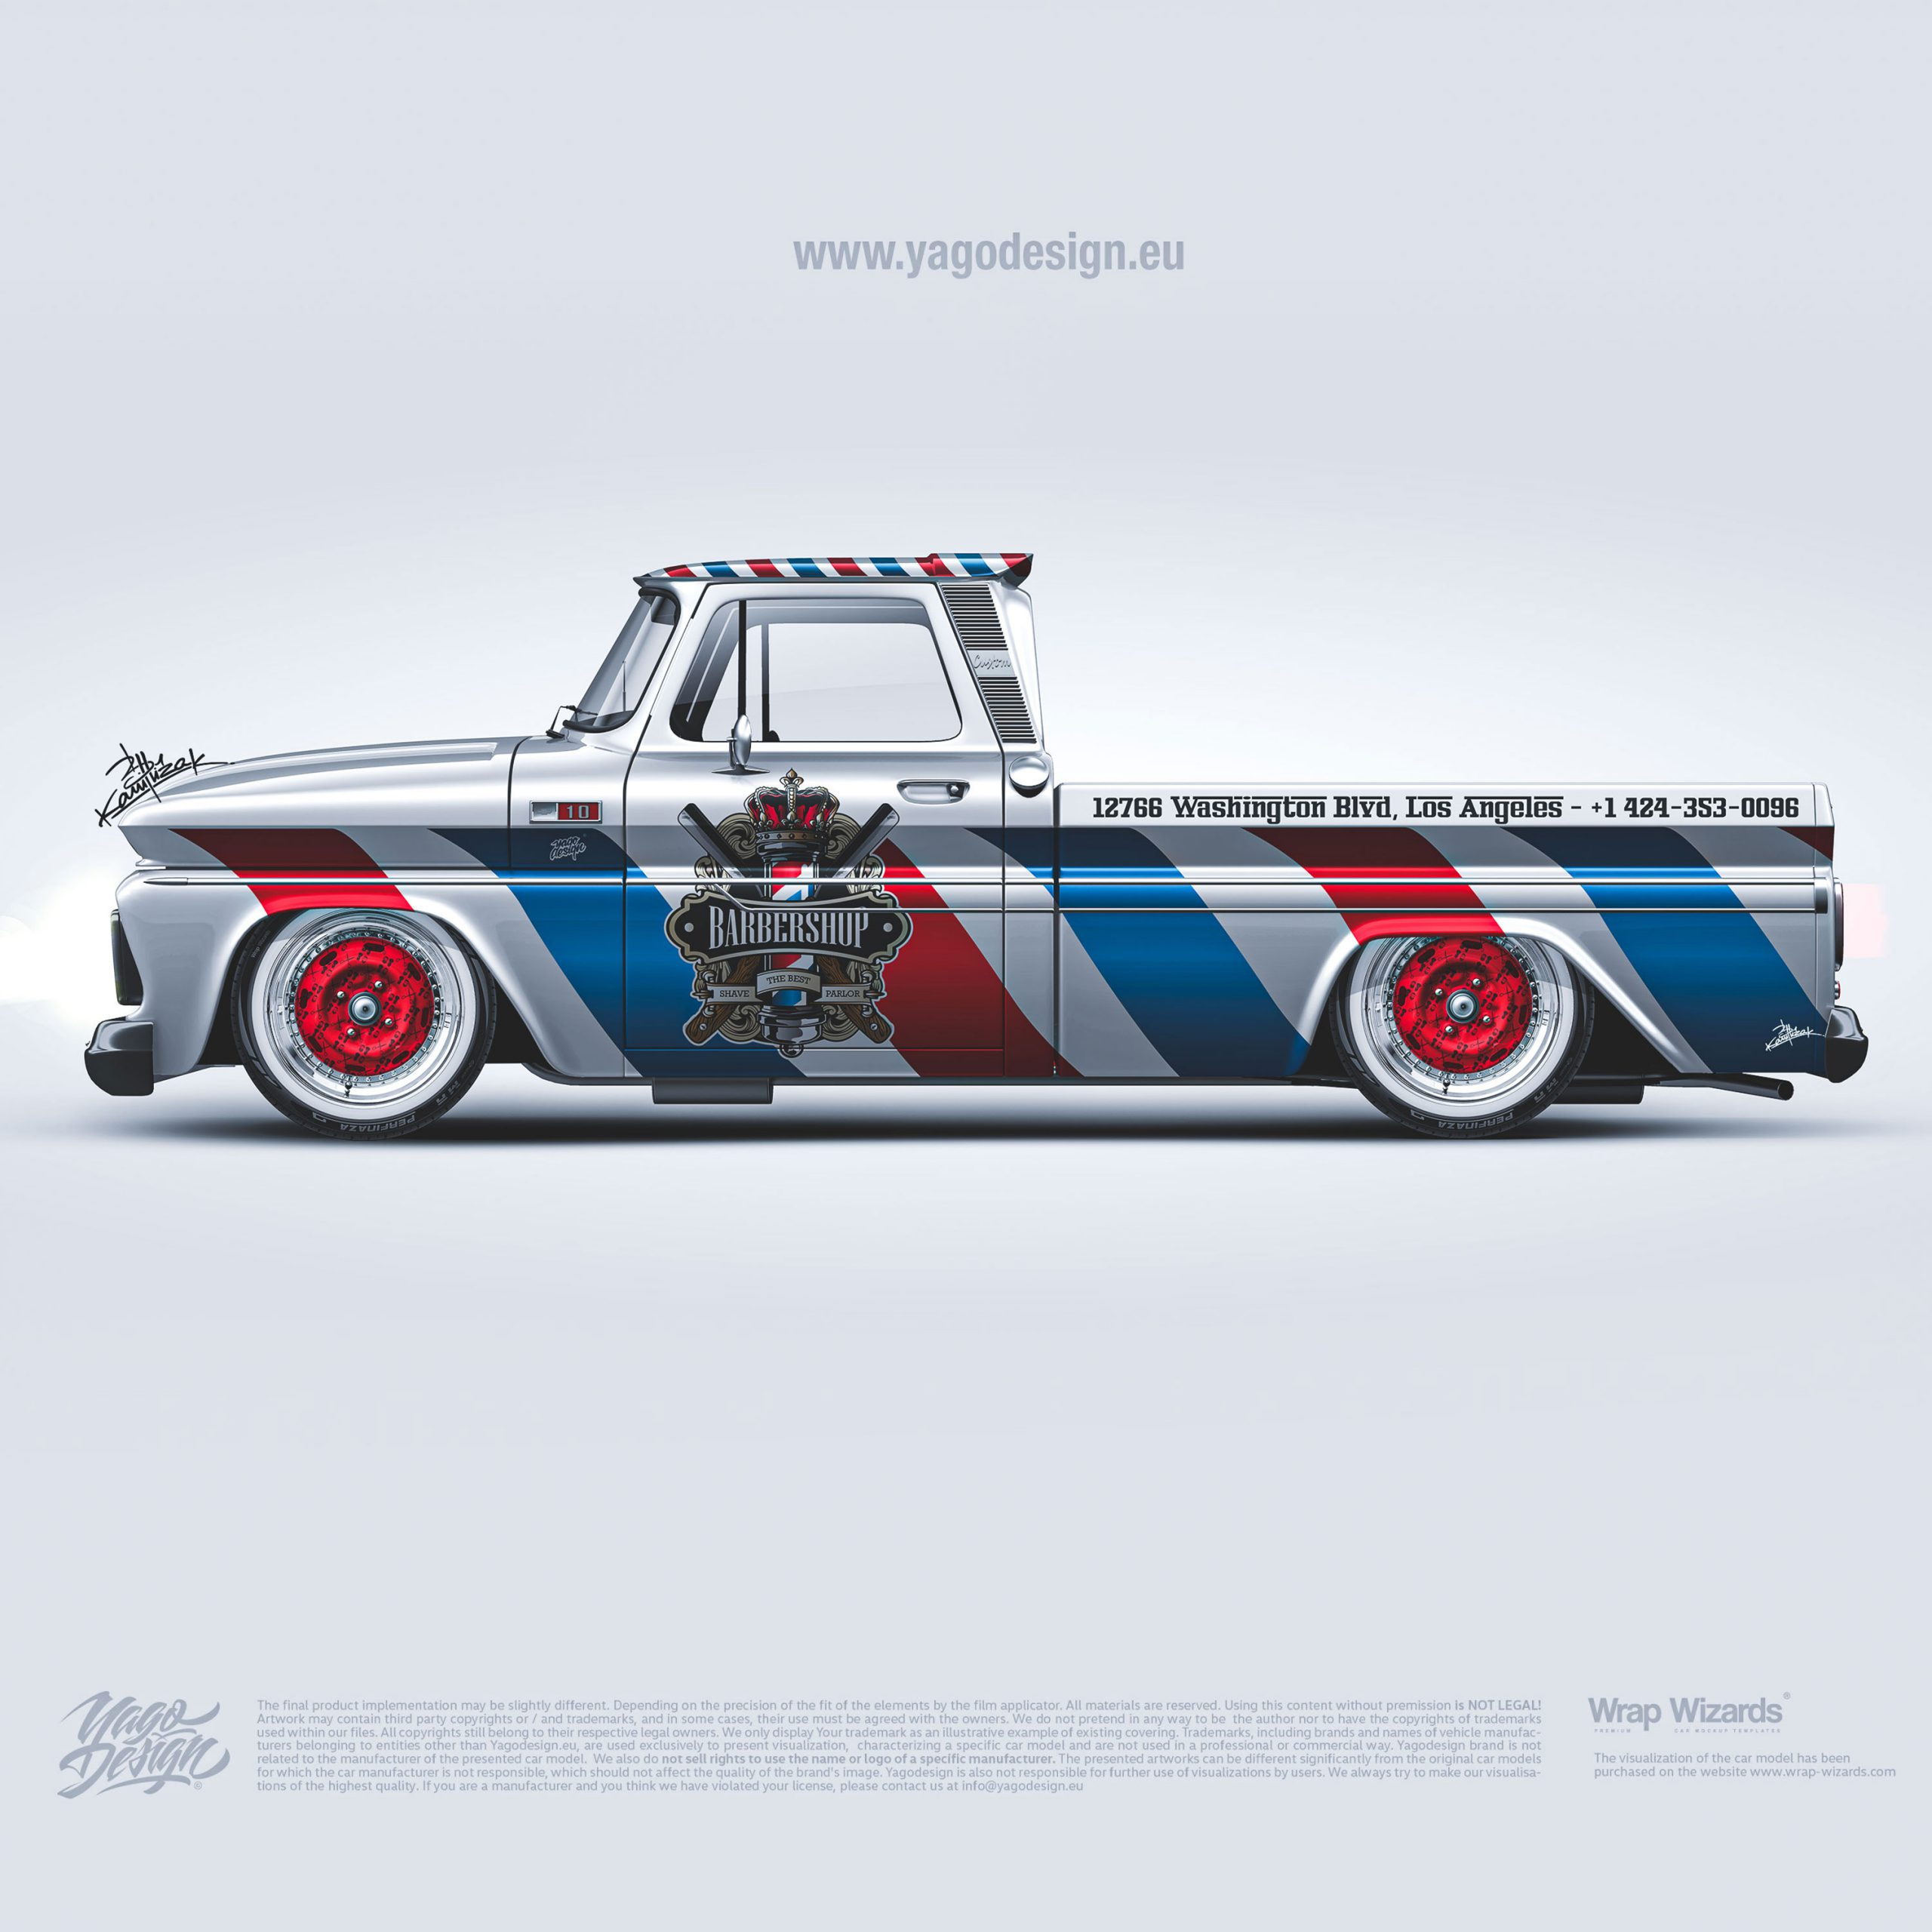 Chevrolet-C-10–by-Yagodesign-Livery-Design-Car-wrapping-studio